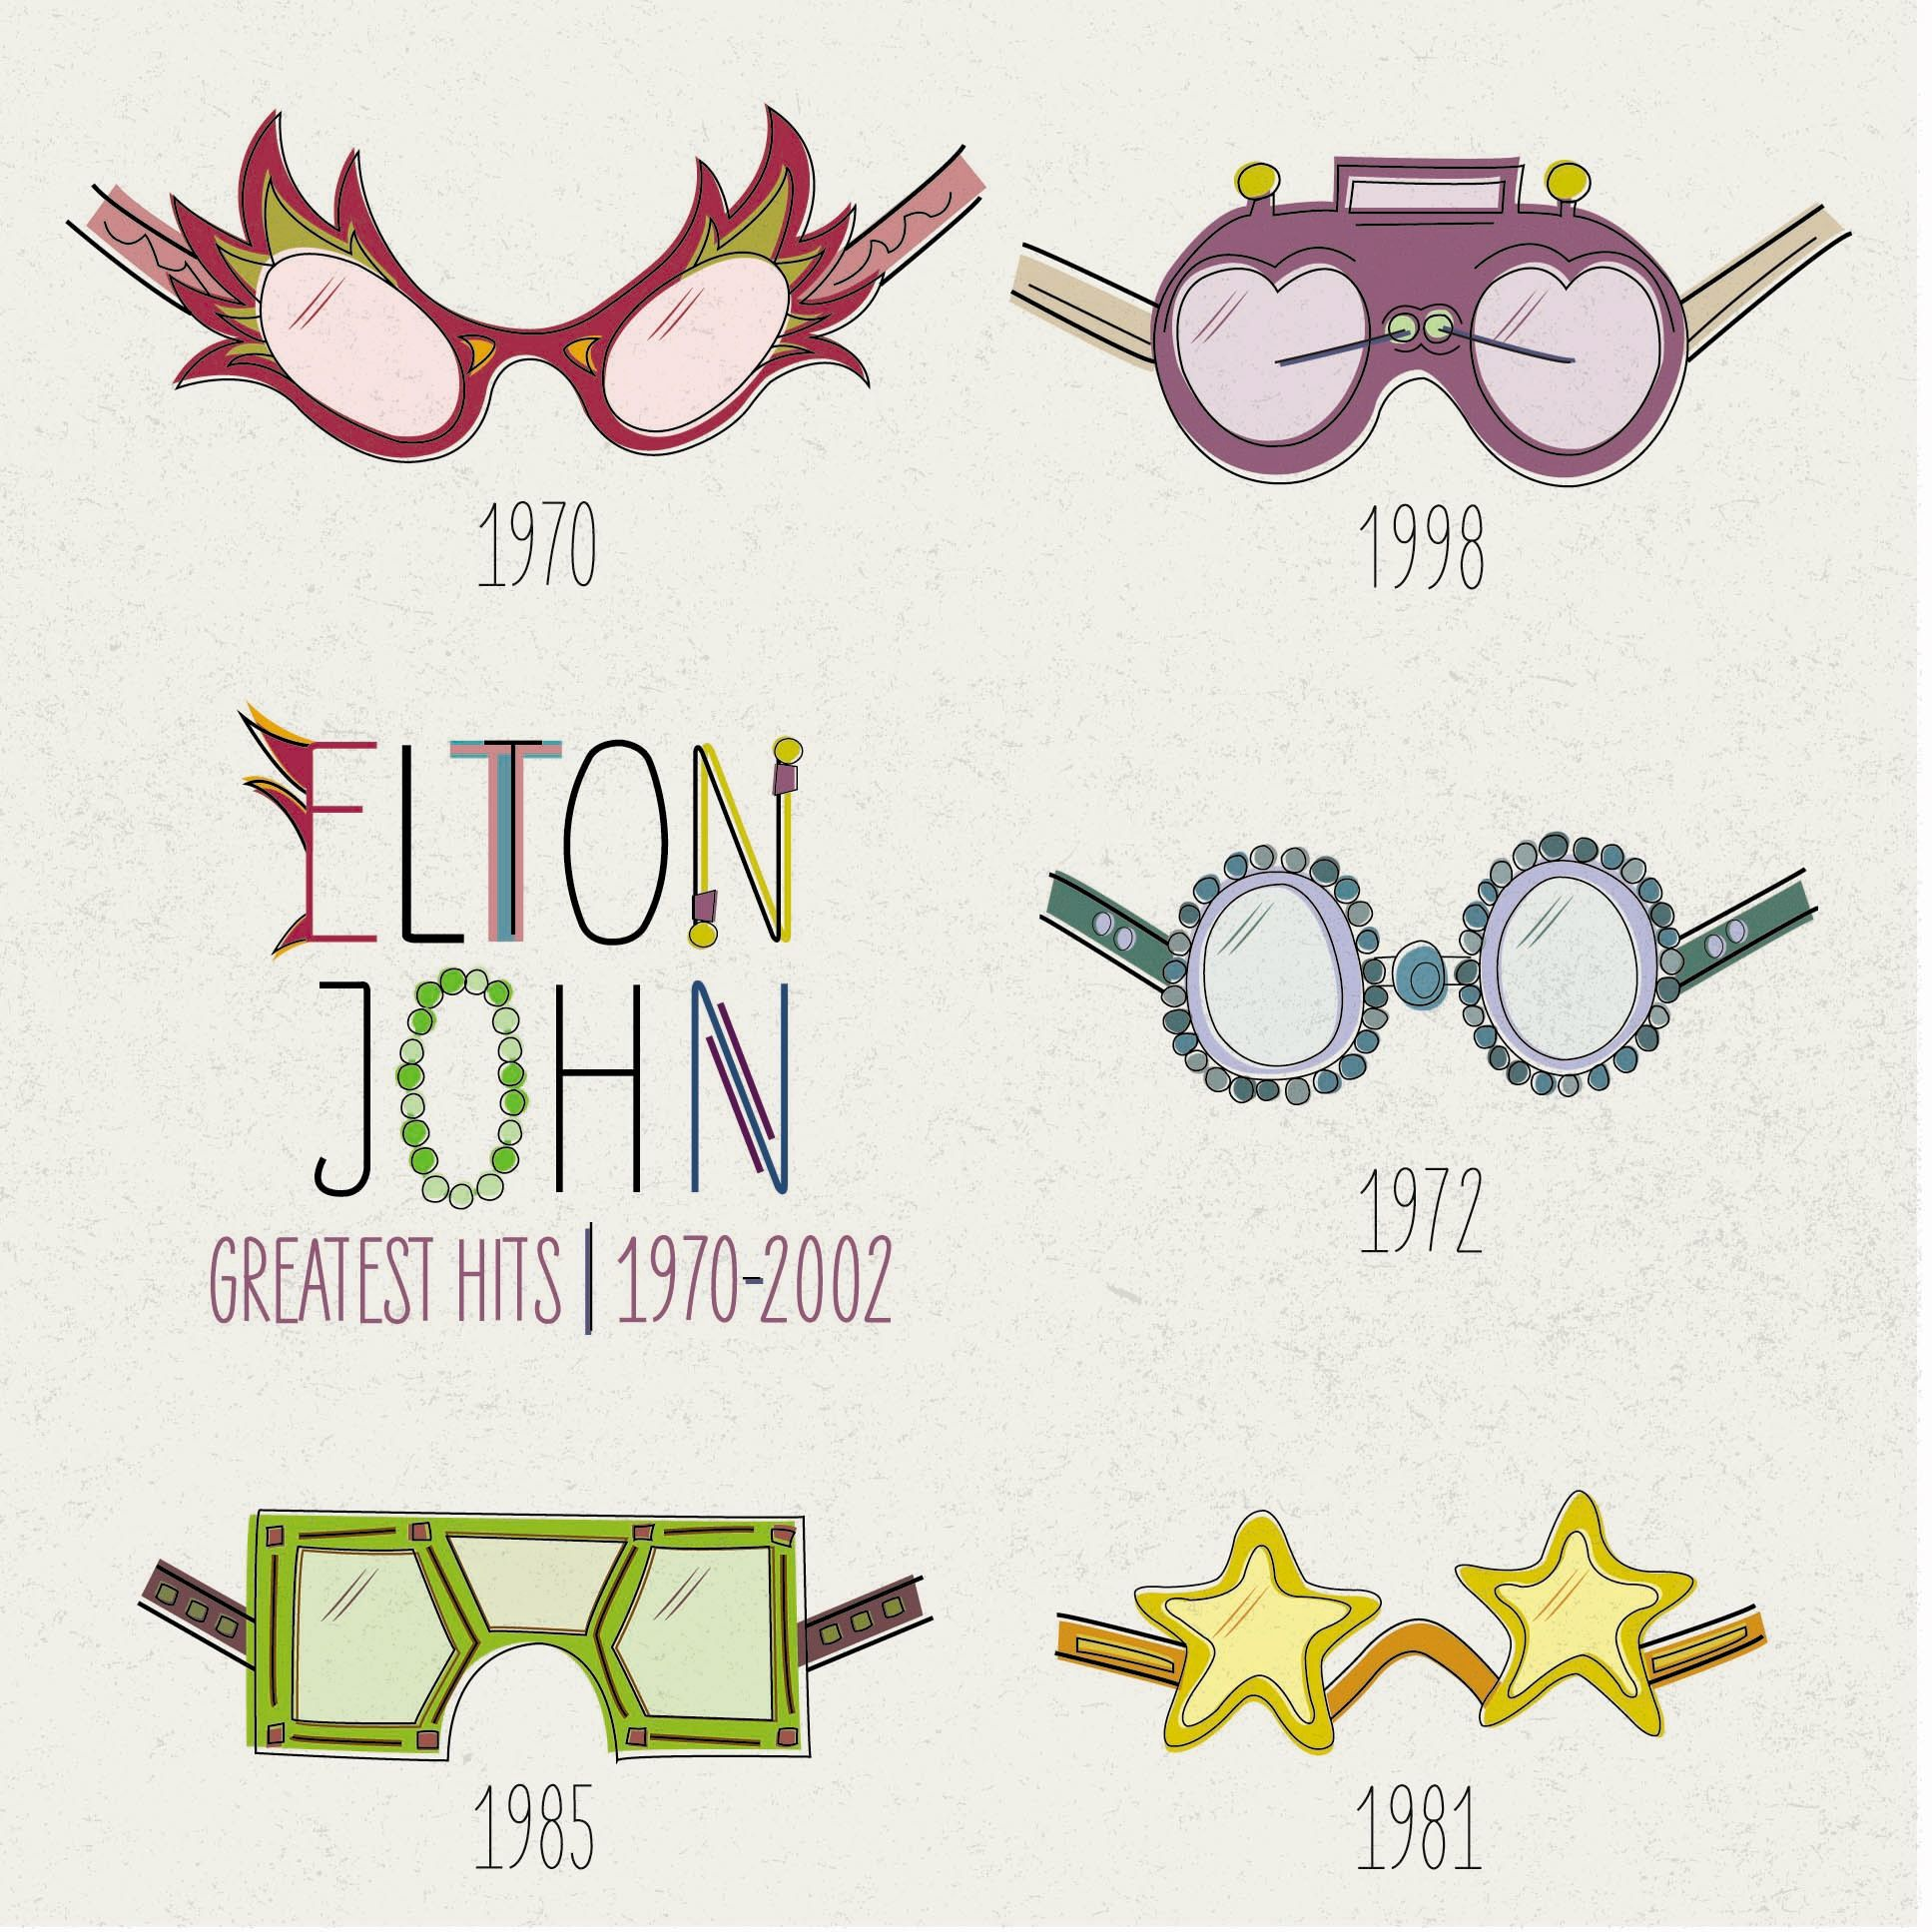 Vinyl album redesign for Elton John's 'Greatest Hits: 1970-2002'. The goal was to capture the essence of his unique style and fashion sense by showcasing his most famous accessory: glasses.